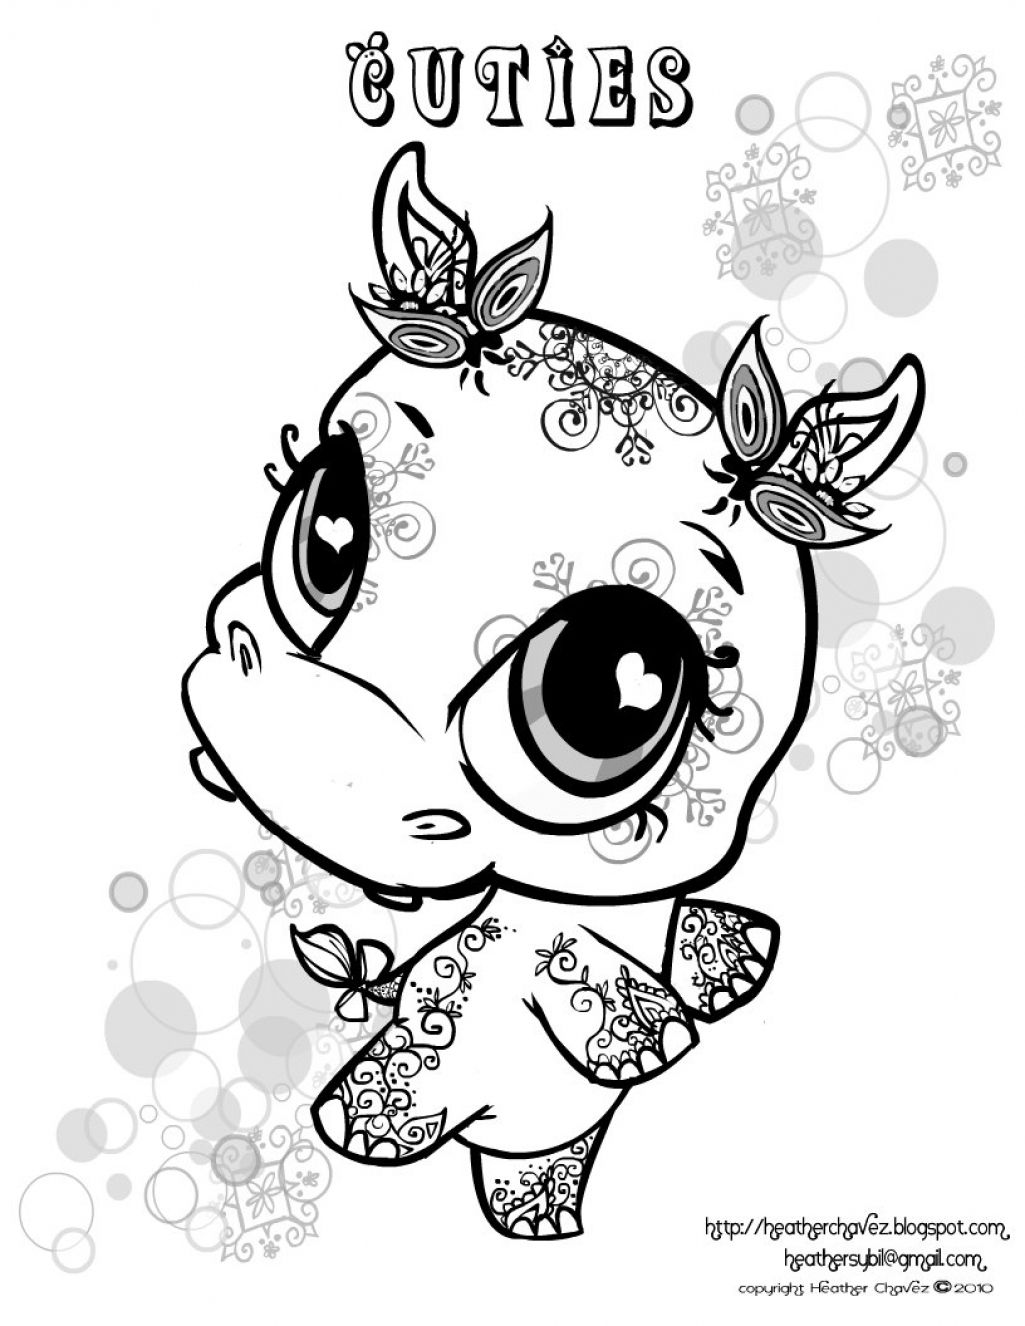 Lps Christmas Coloring Pages With Littlest Pet Shop